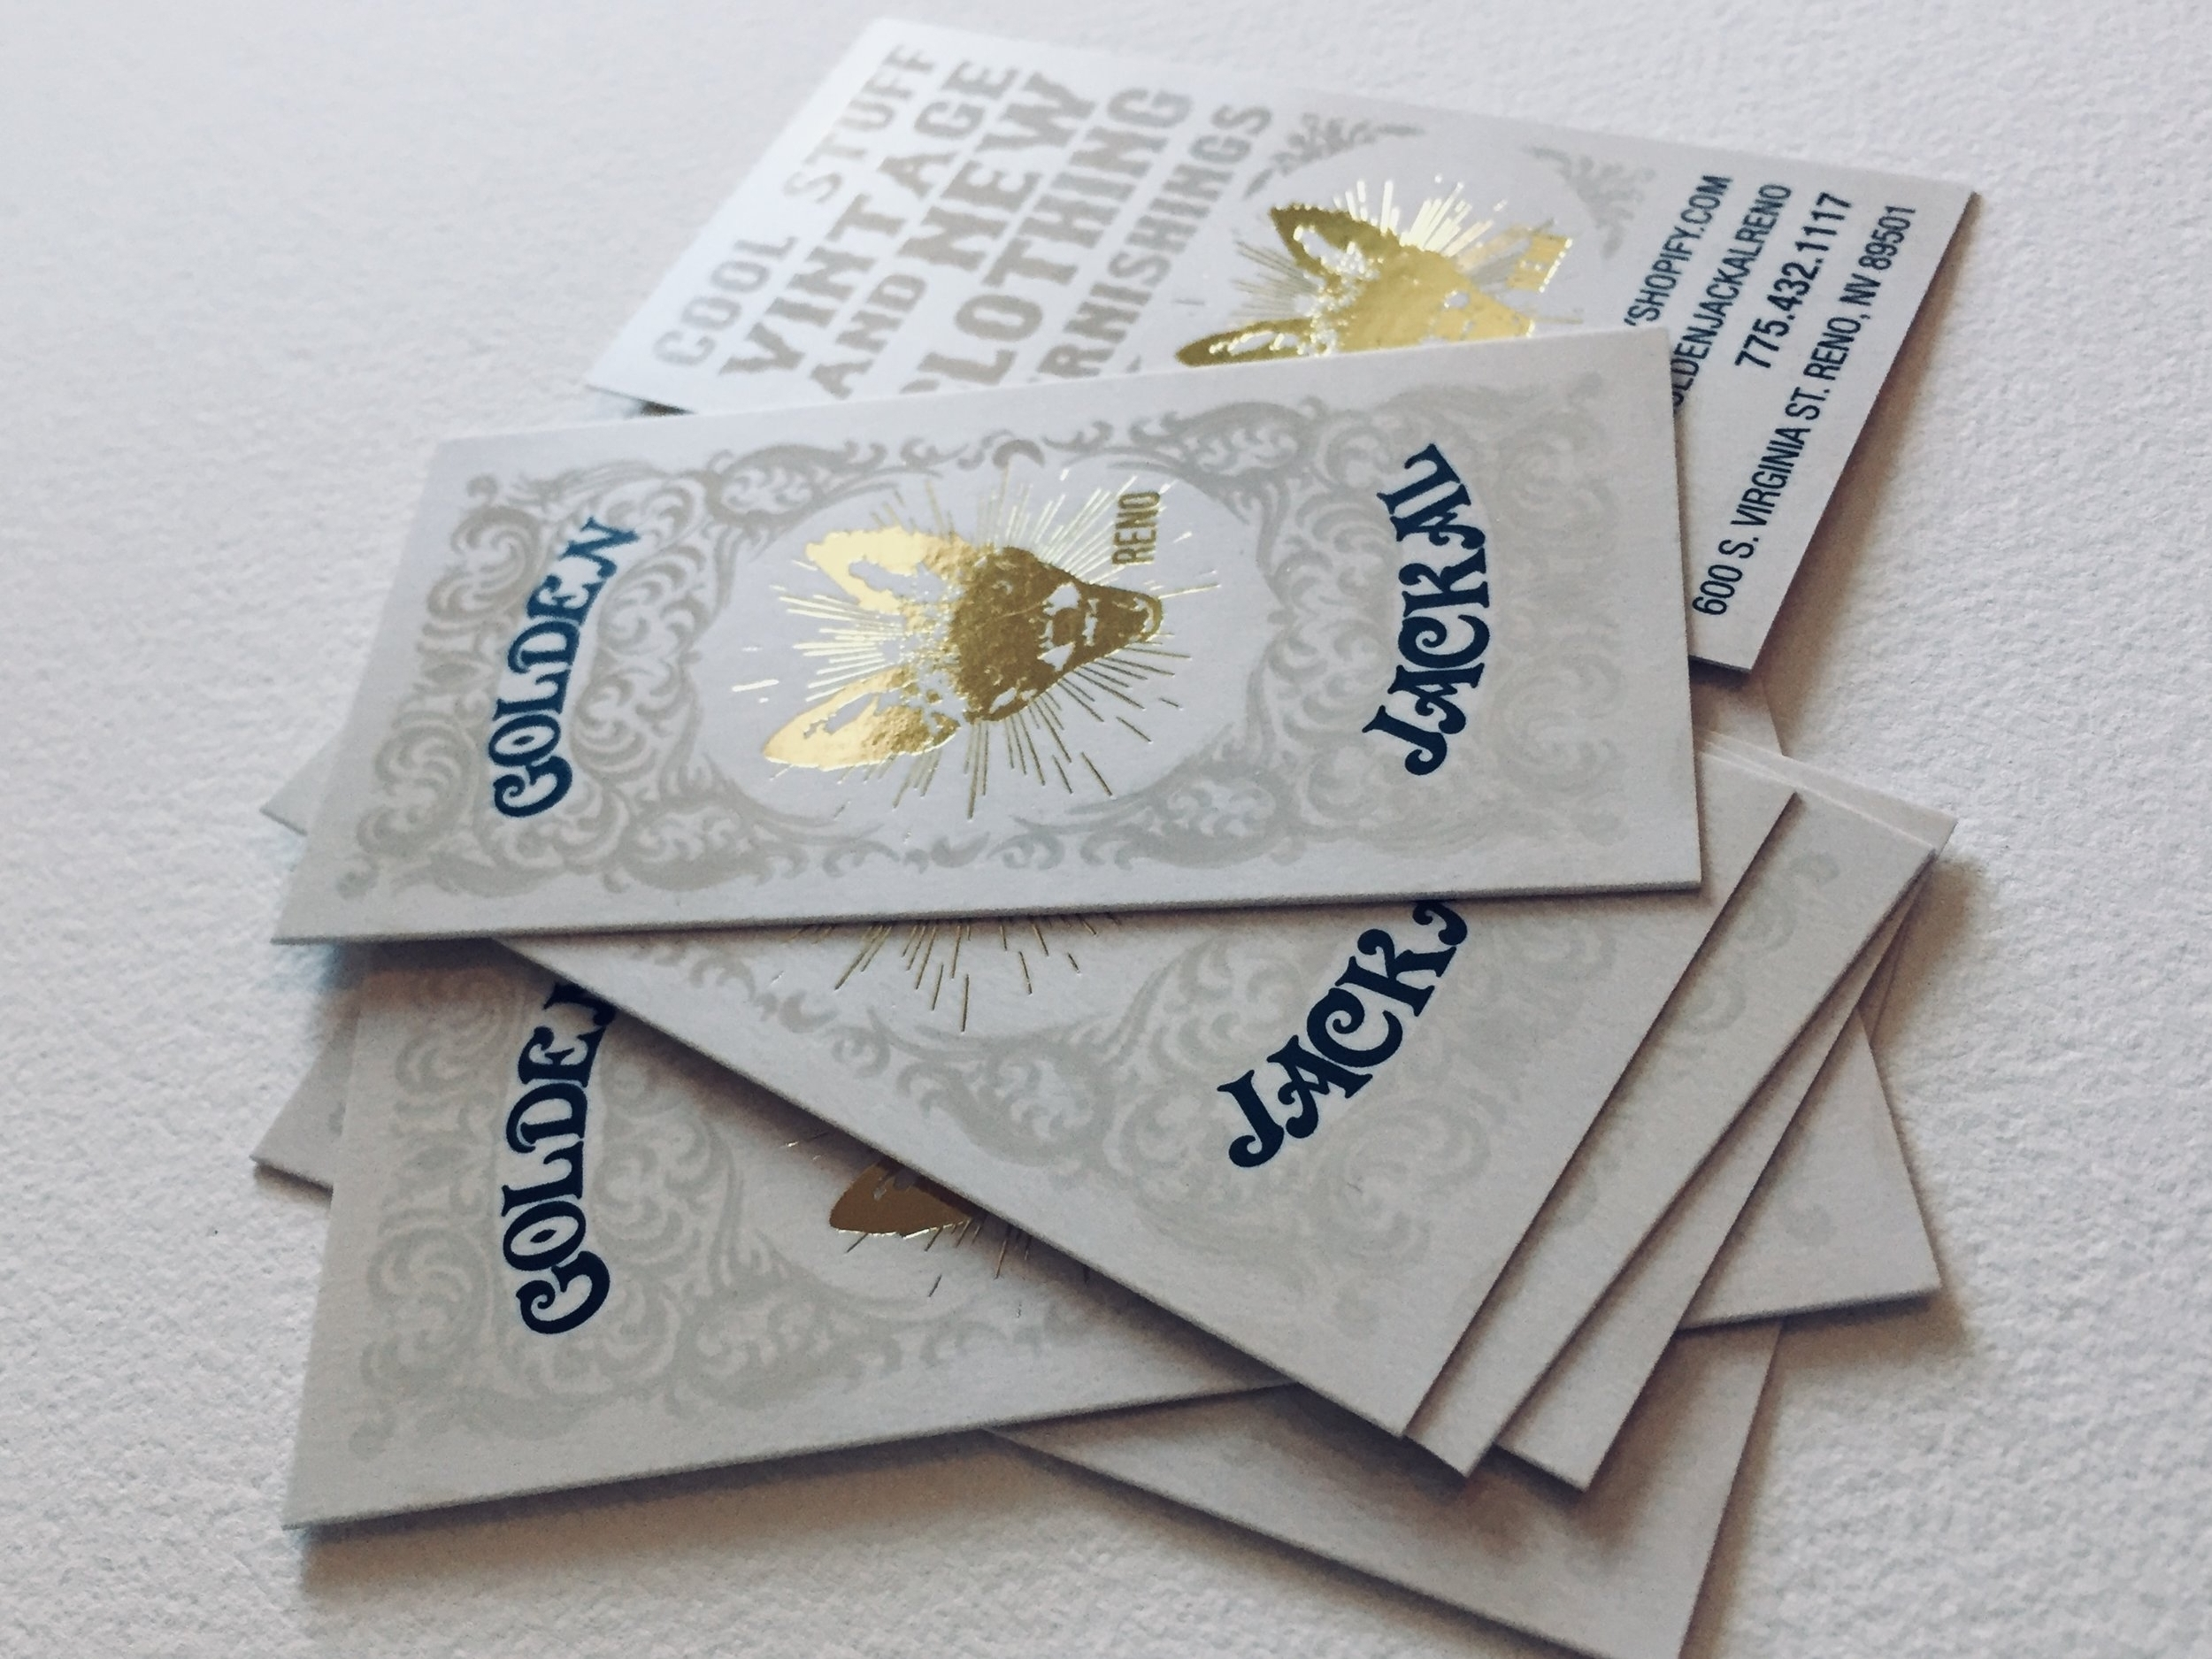 16pt Silk Laminated Cards with Gold Foil and Raised Spot UV